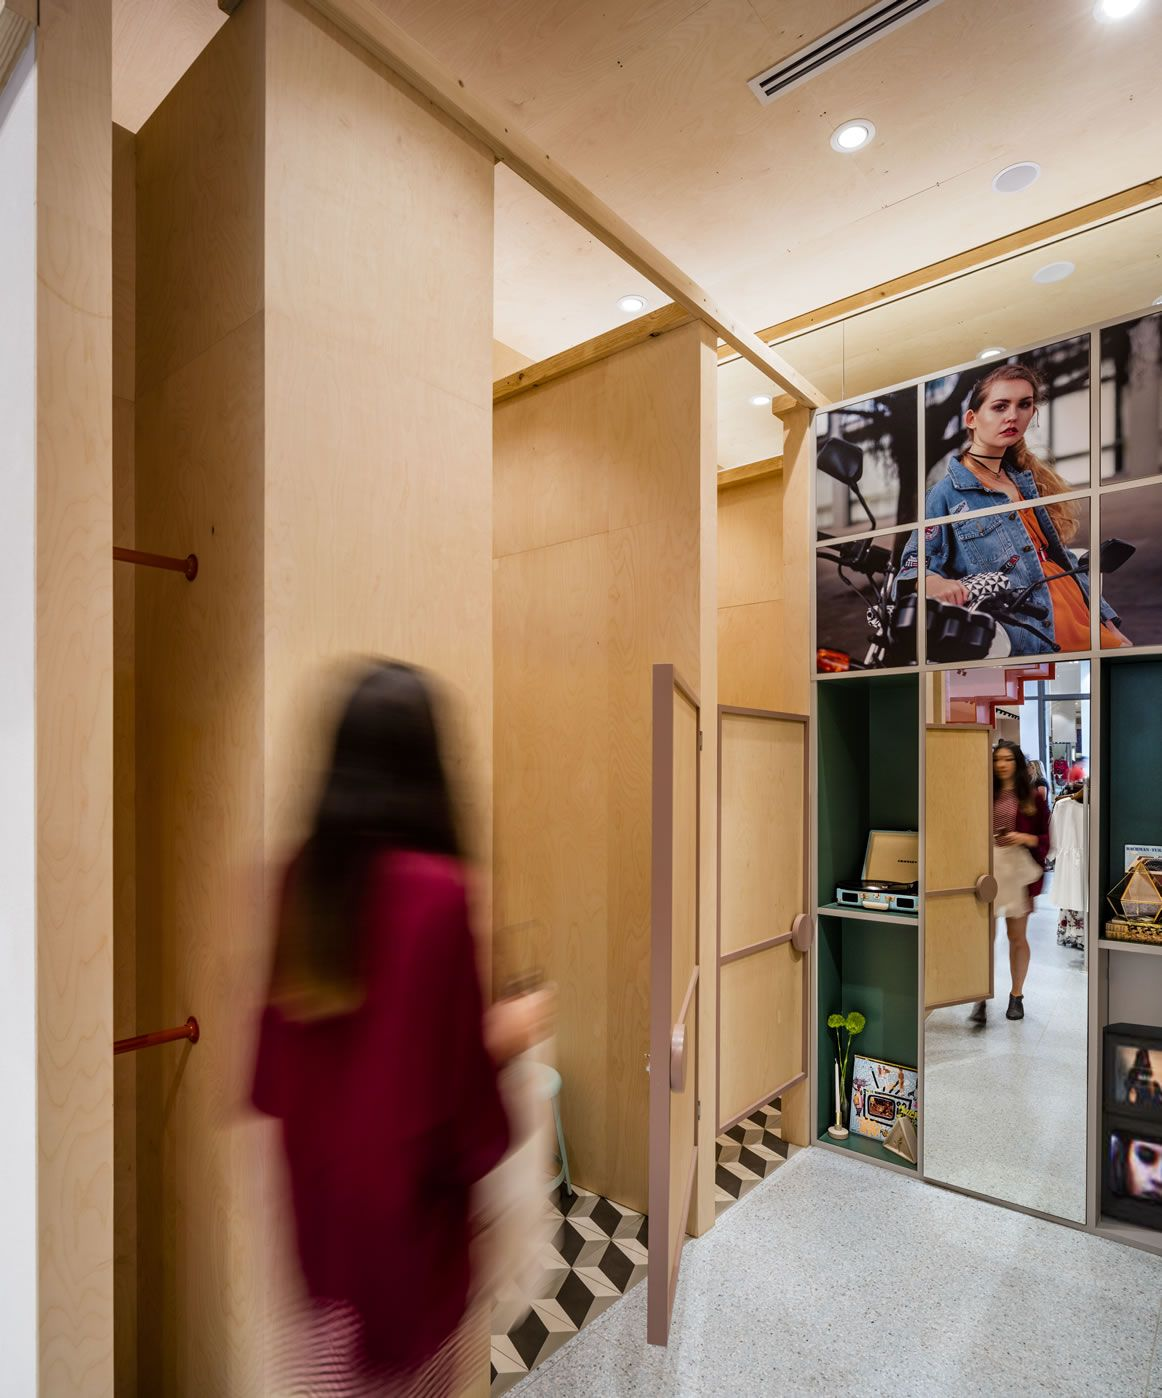 Pin By Luciana Olivieri On Retail / Fitting Rooms